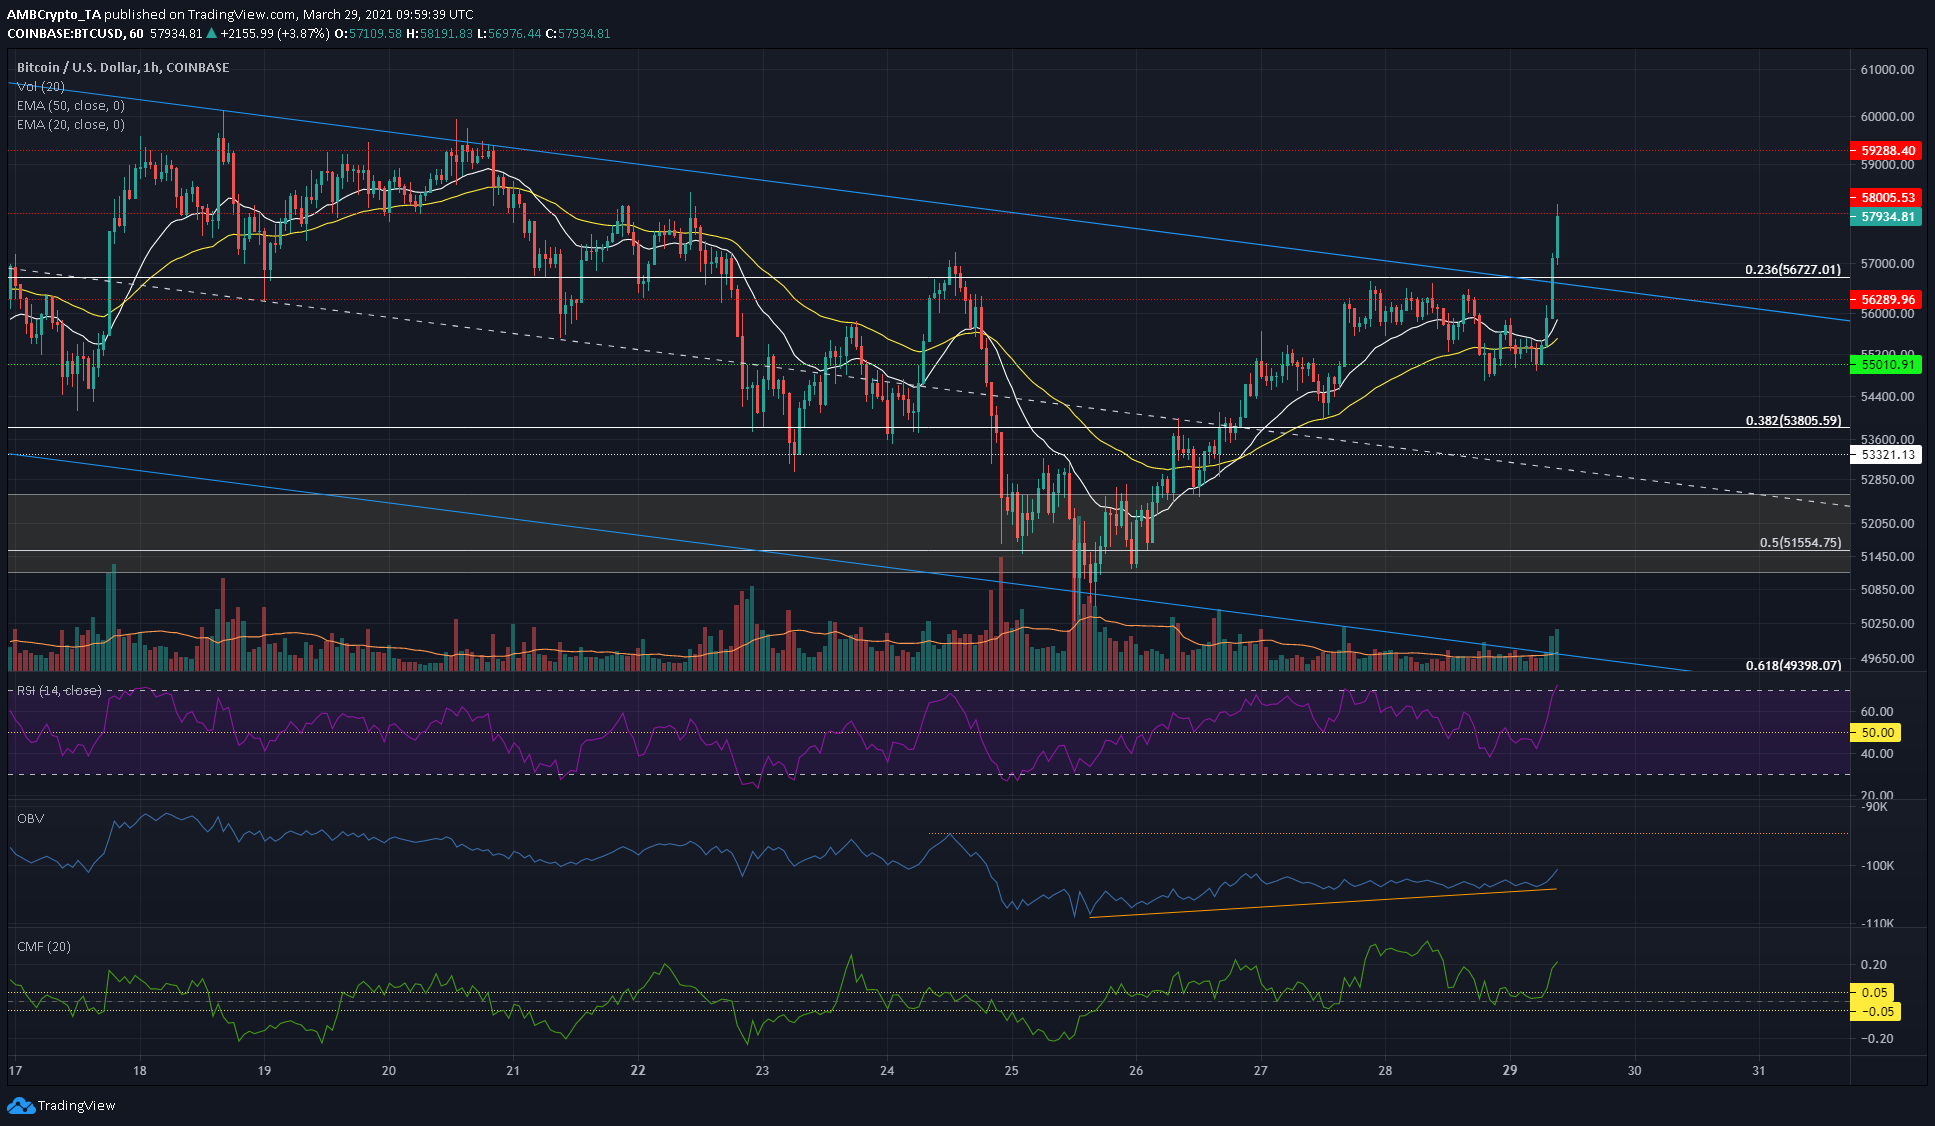 Bitcoin Price Analysis: 29 March